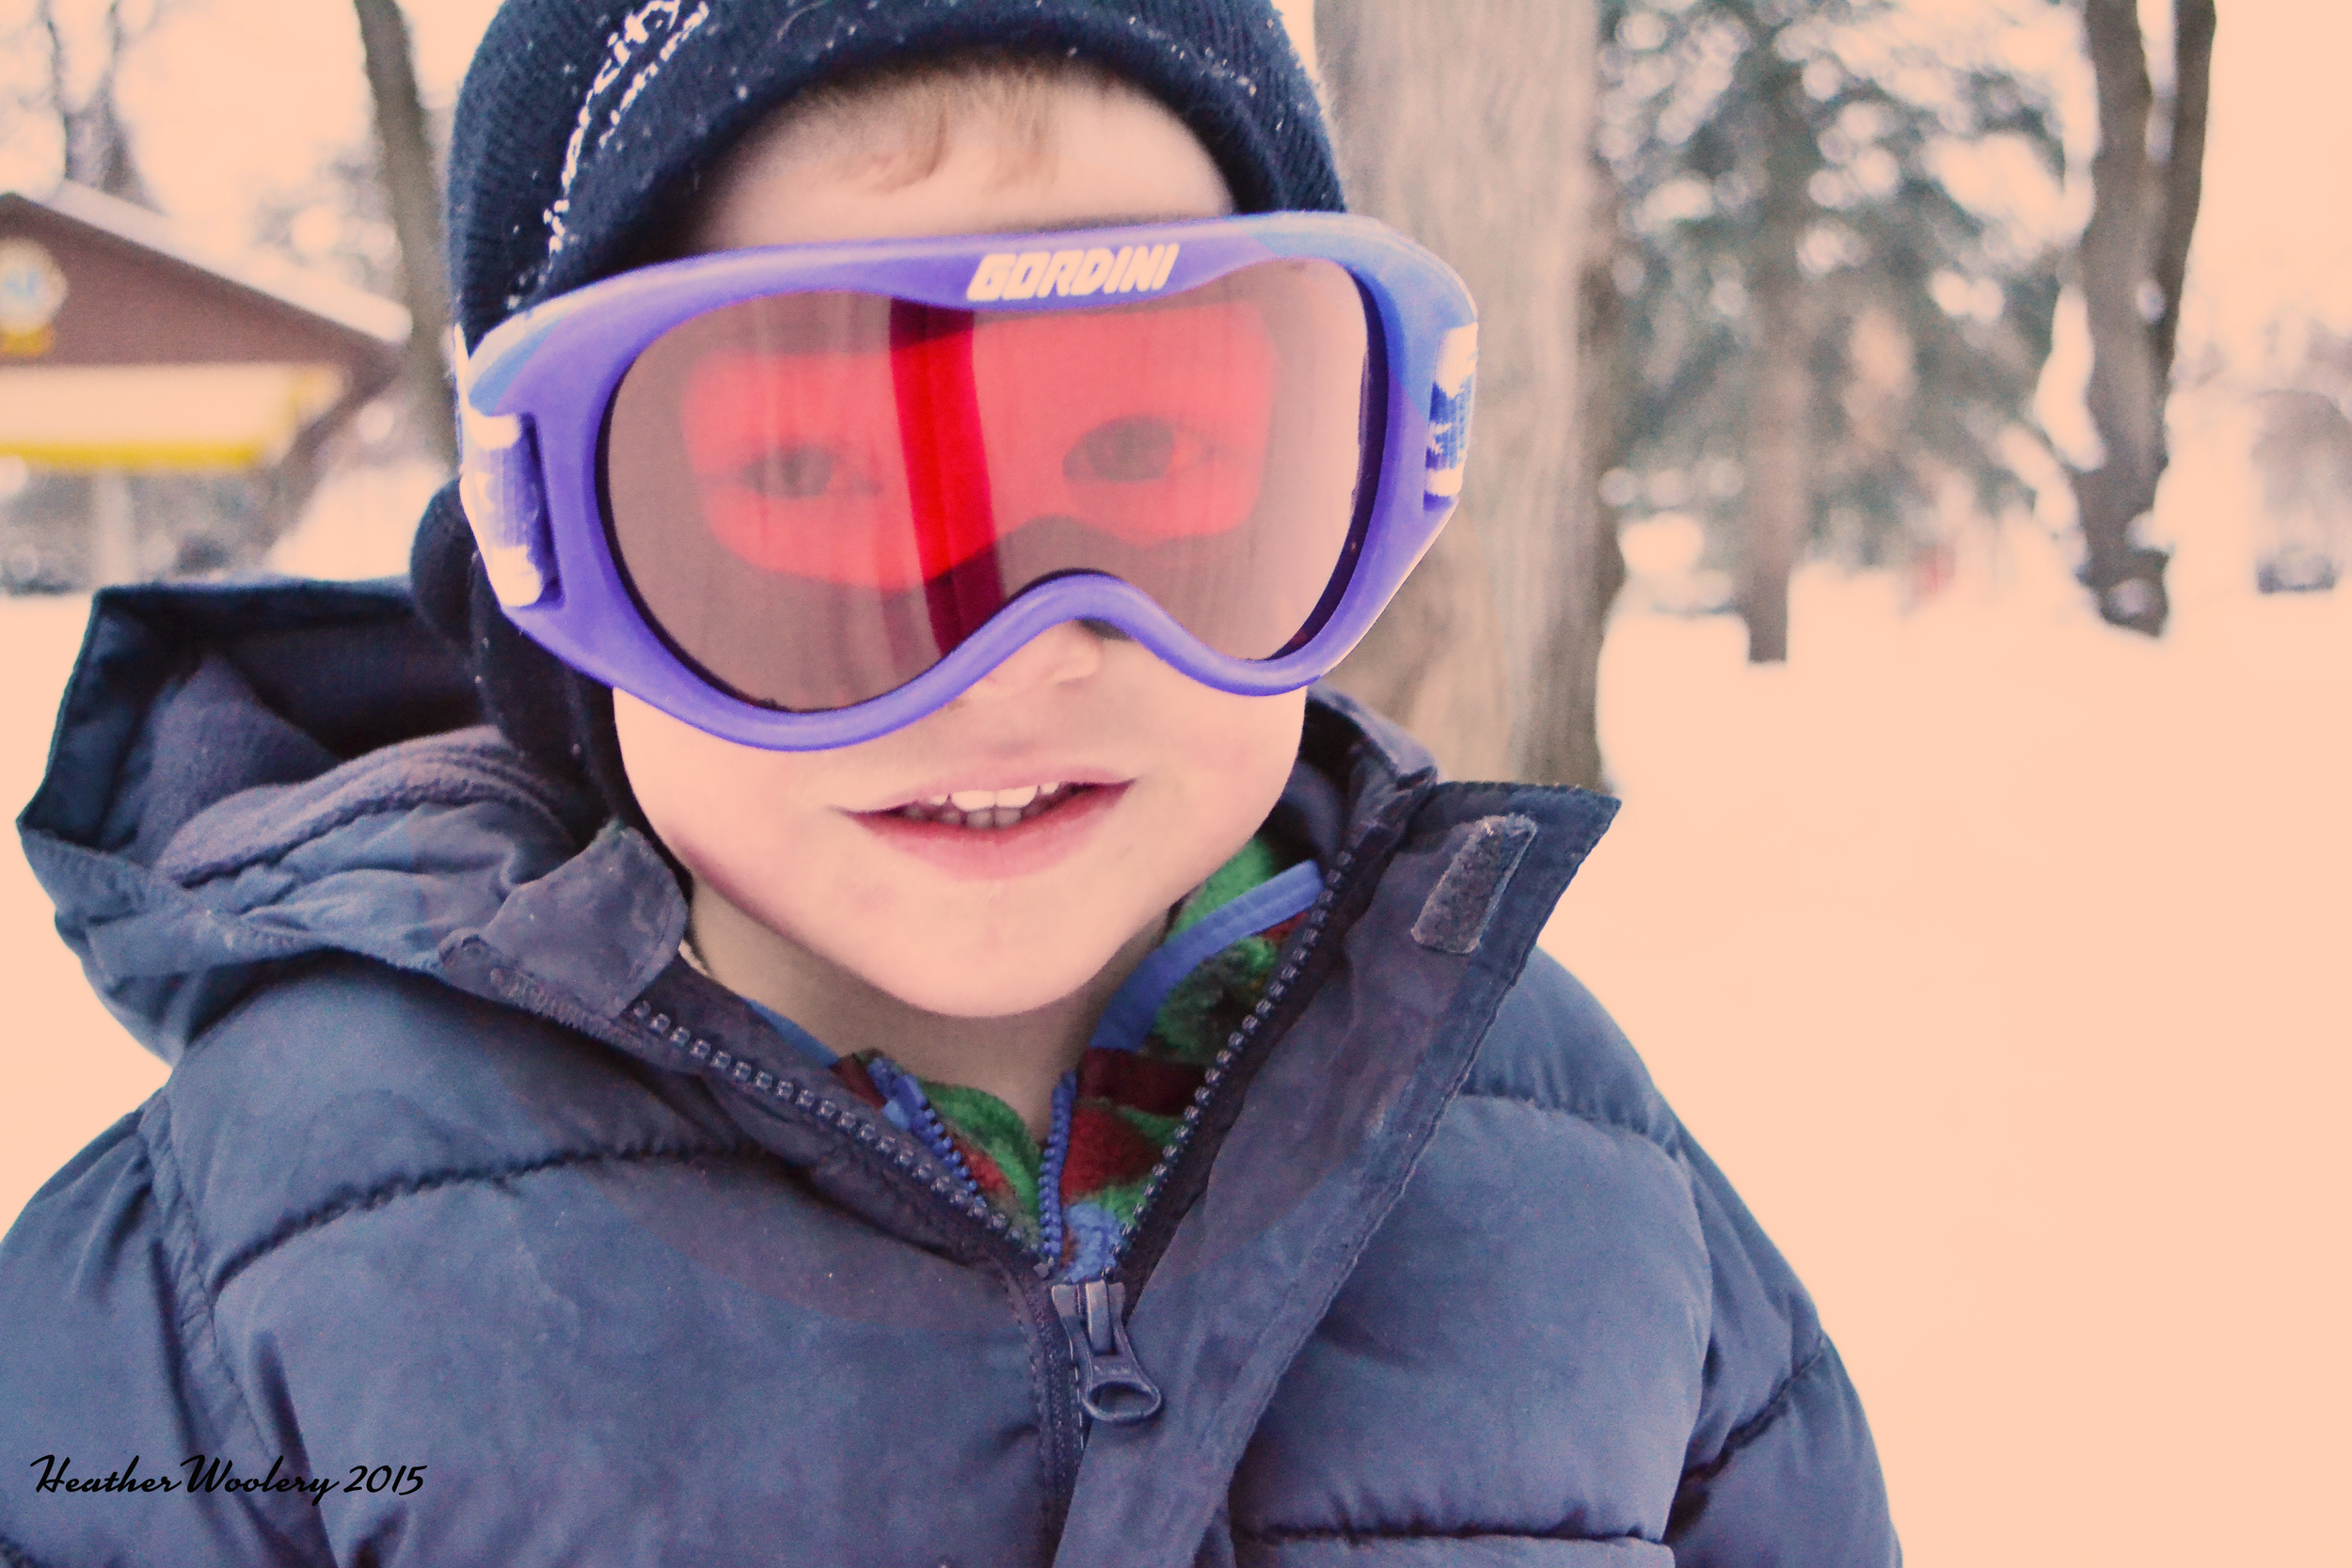 Gearing up to go sledding | All Rights Reserved Heather Woolery 2015